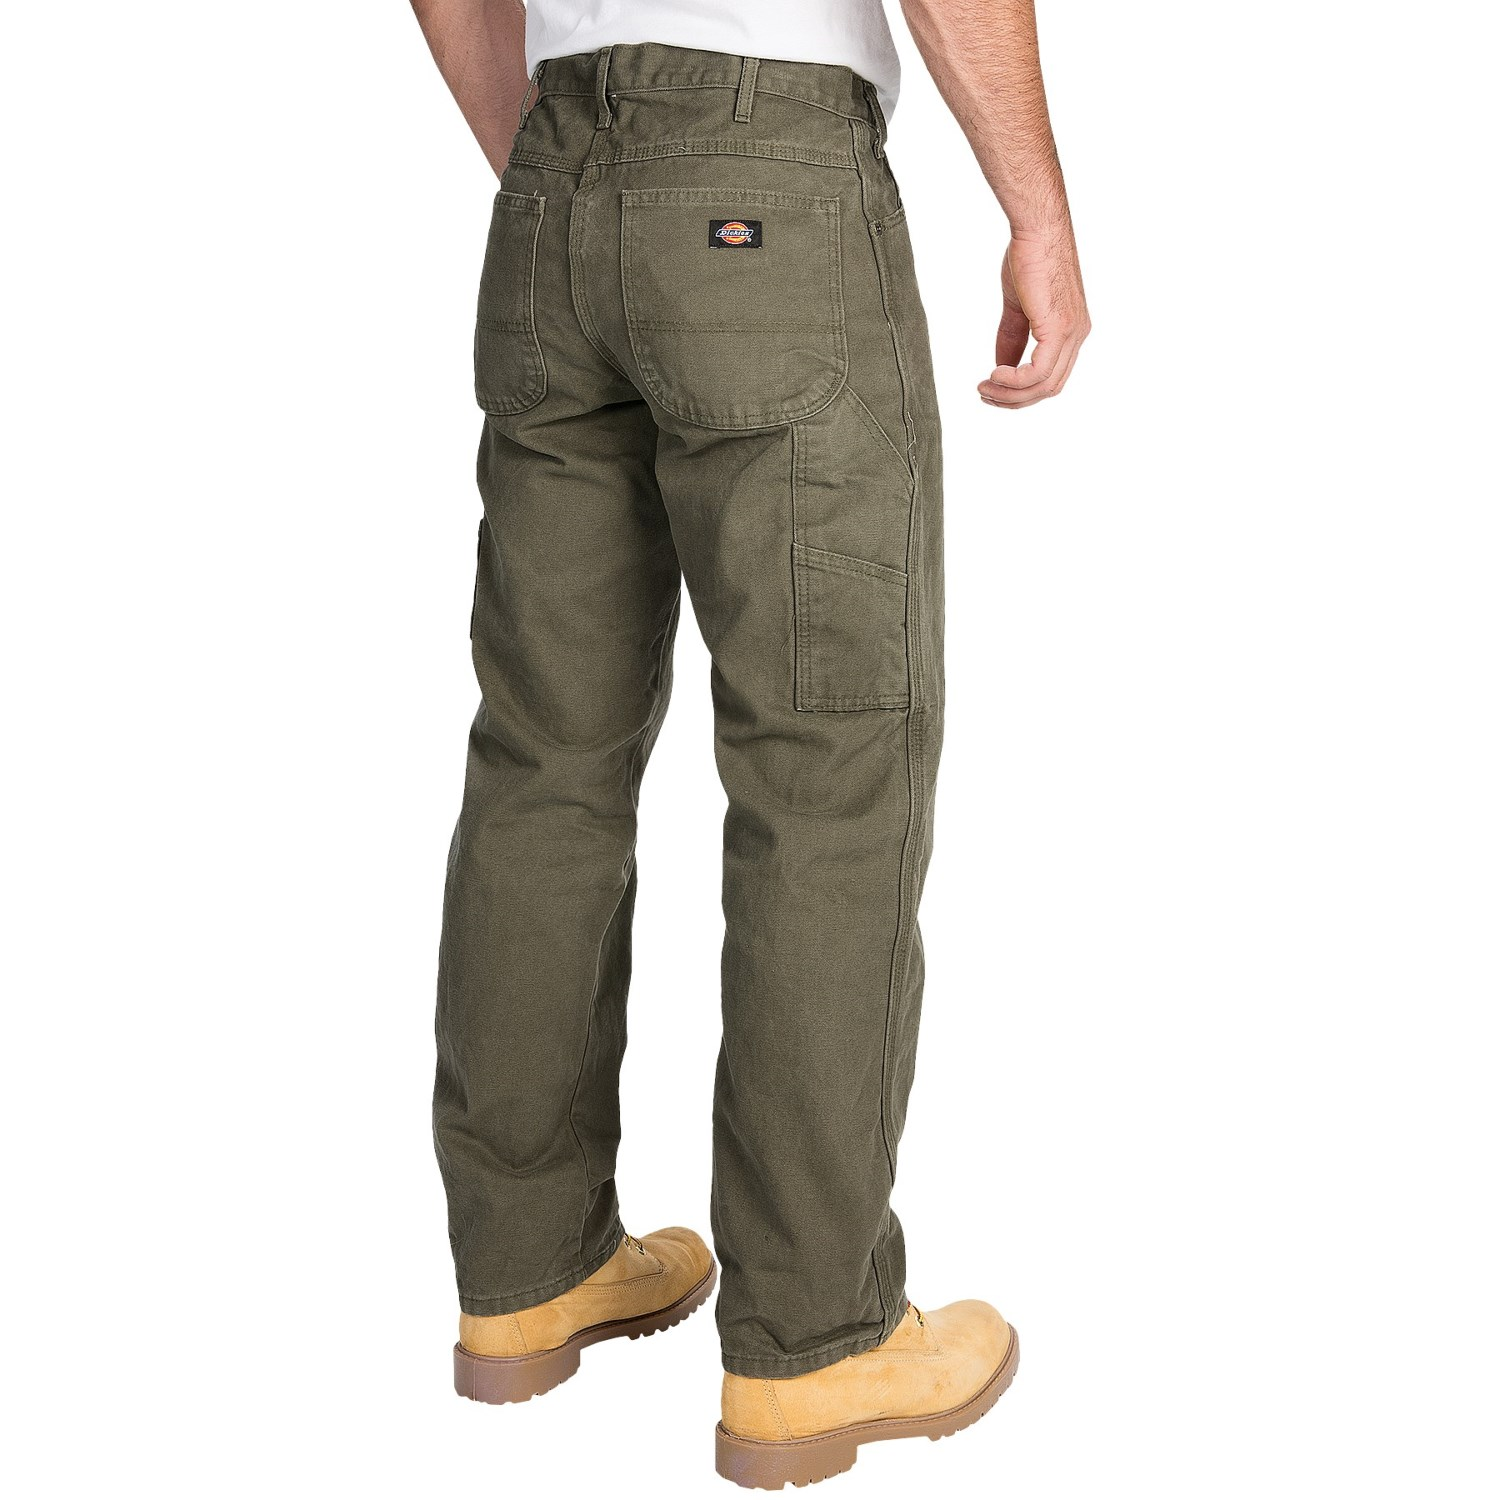 Dickies Sanded Carpenter Pants (For Men) - Save 51%